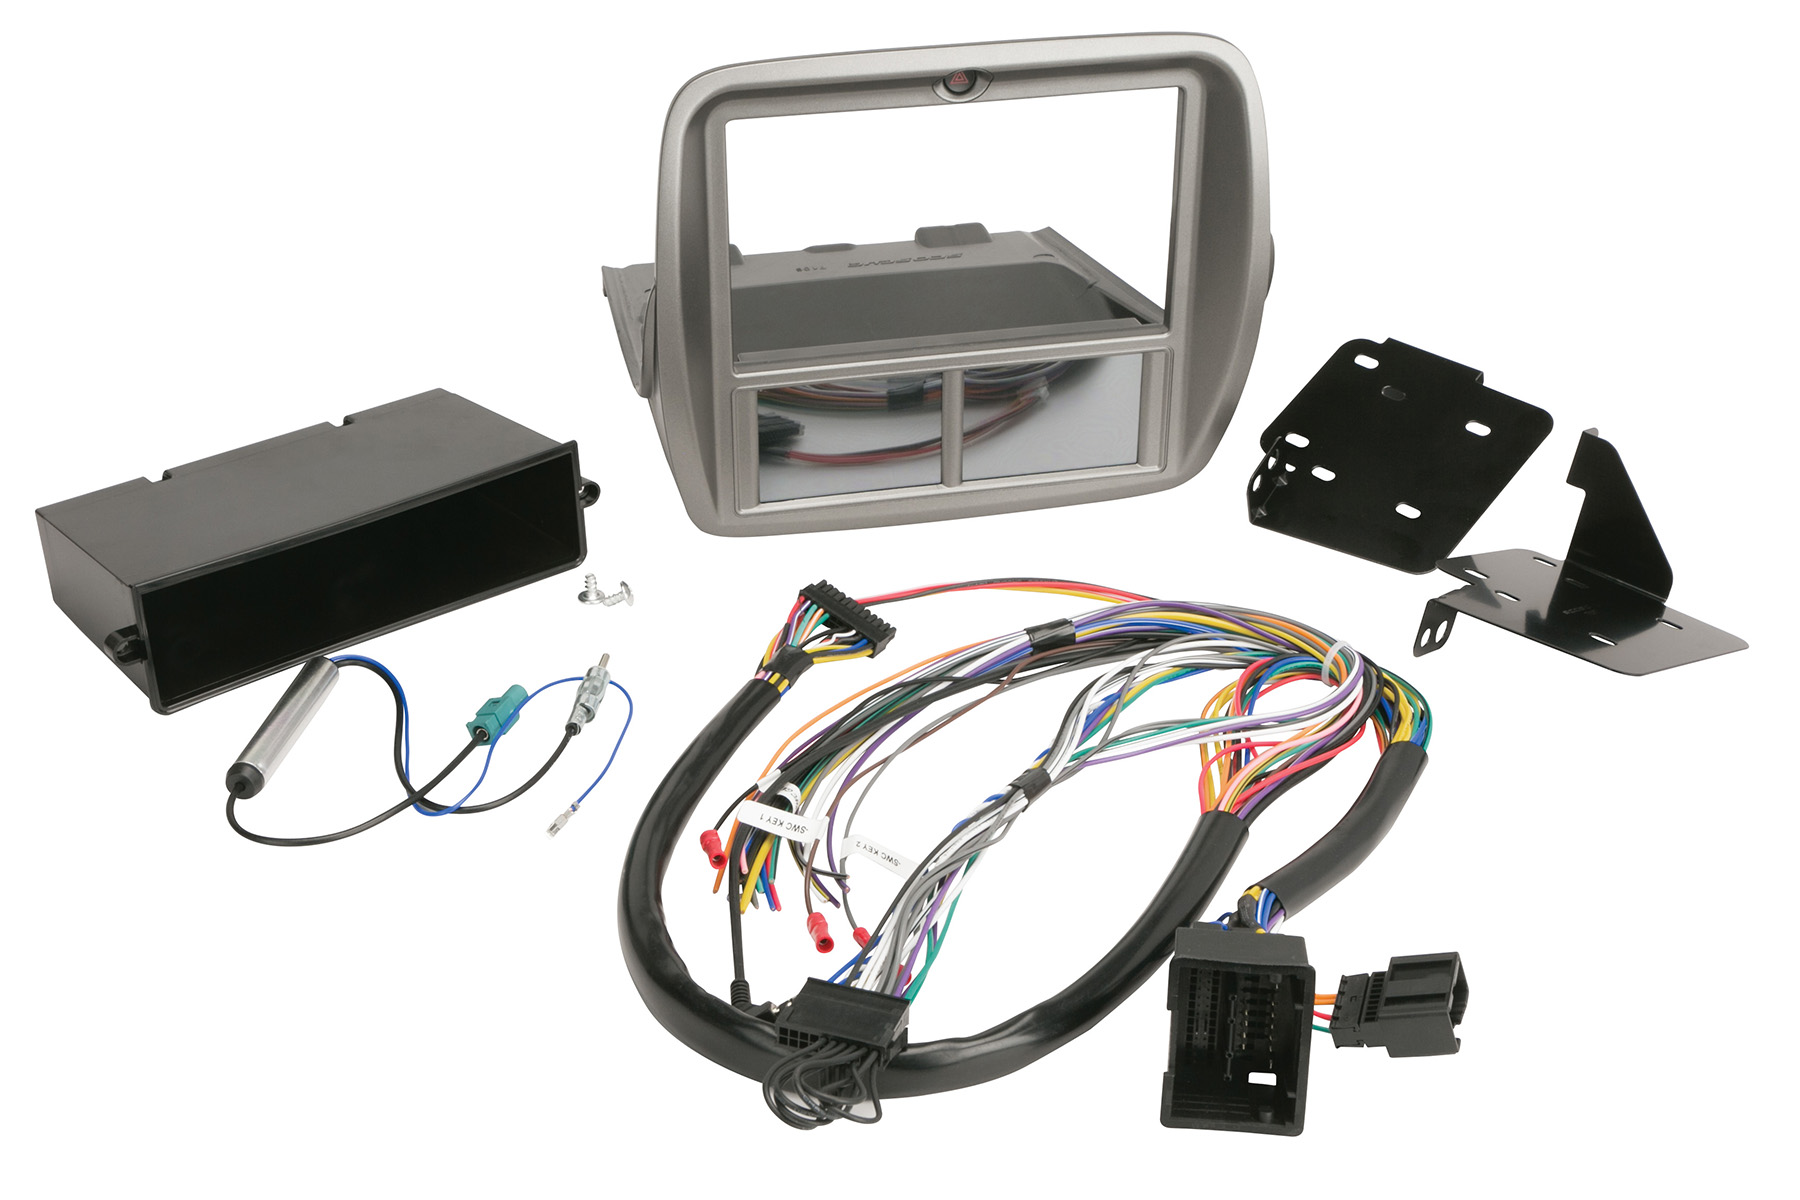 Camaro Scosche Wiring Harness Diagrams Fd23b Dash Kit Html Autos Post Gm2500i Gm2000